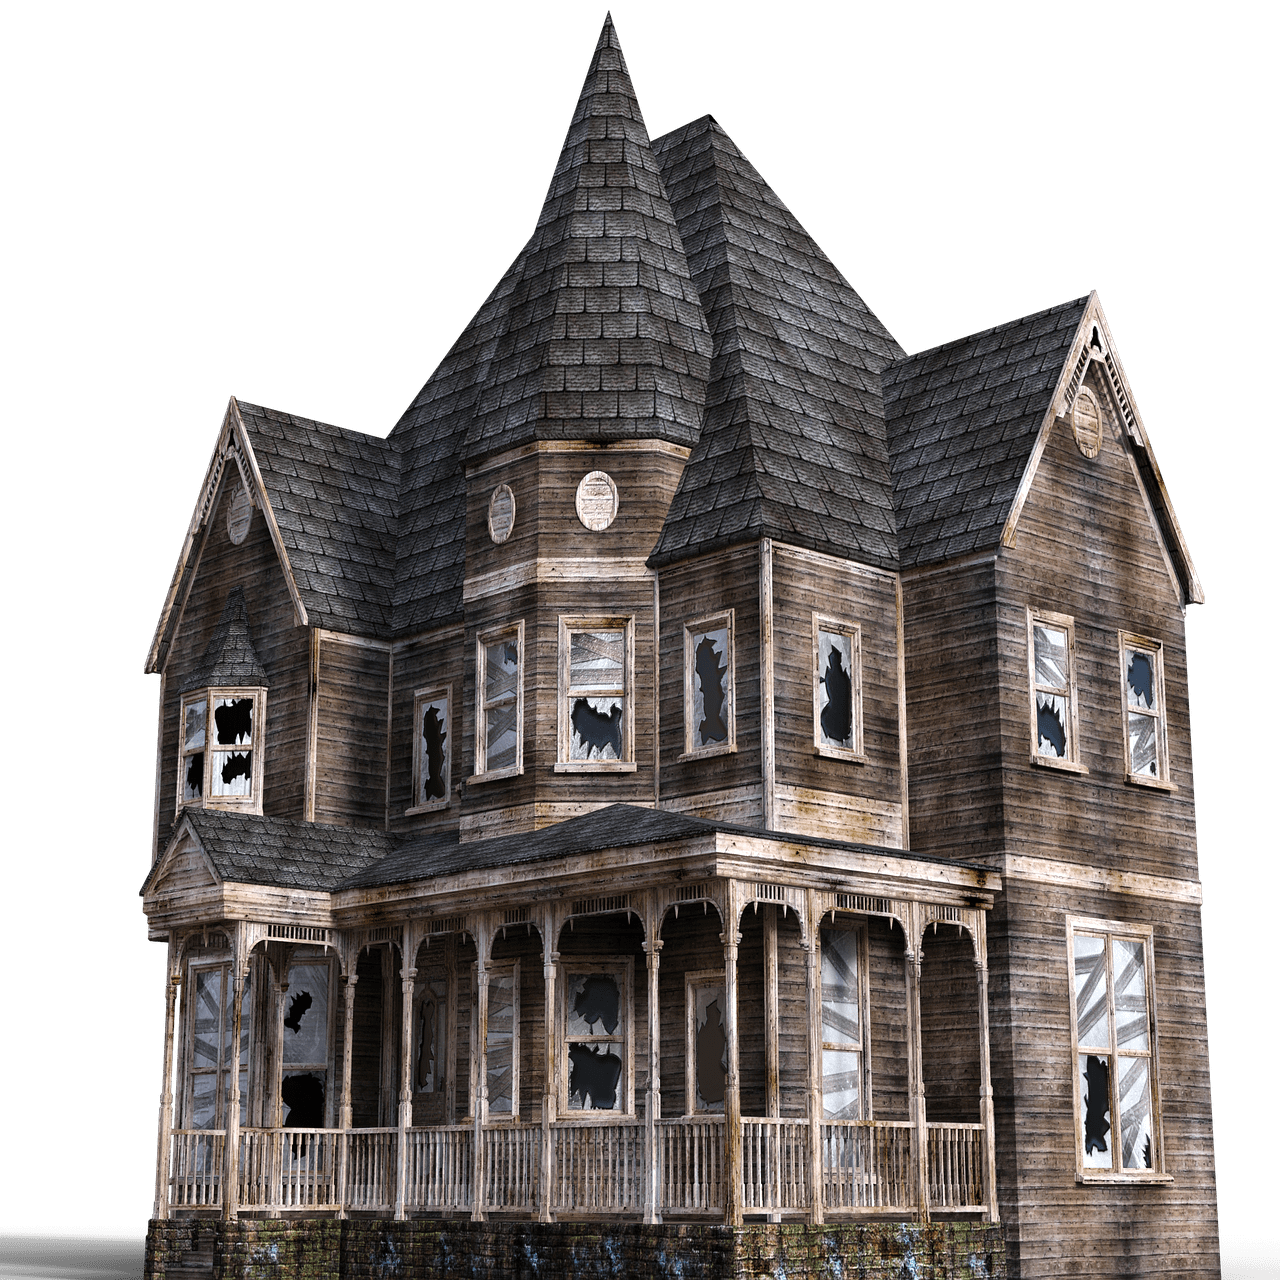 clown halloween horror haunted house